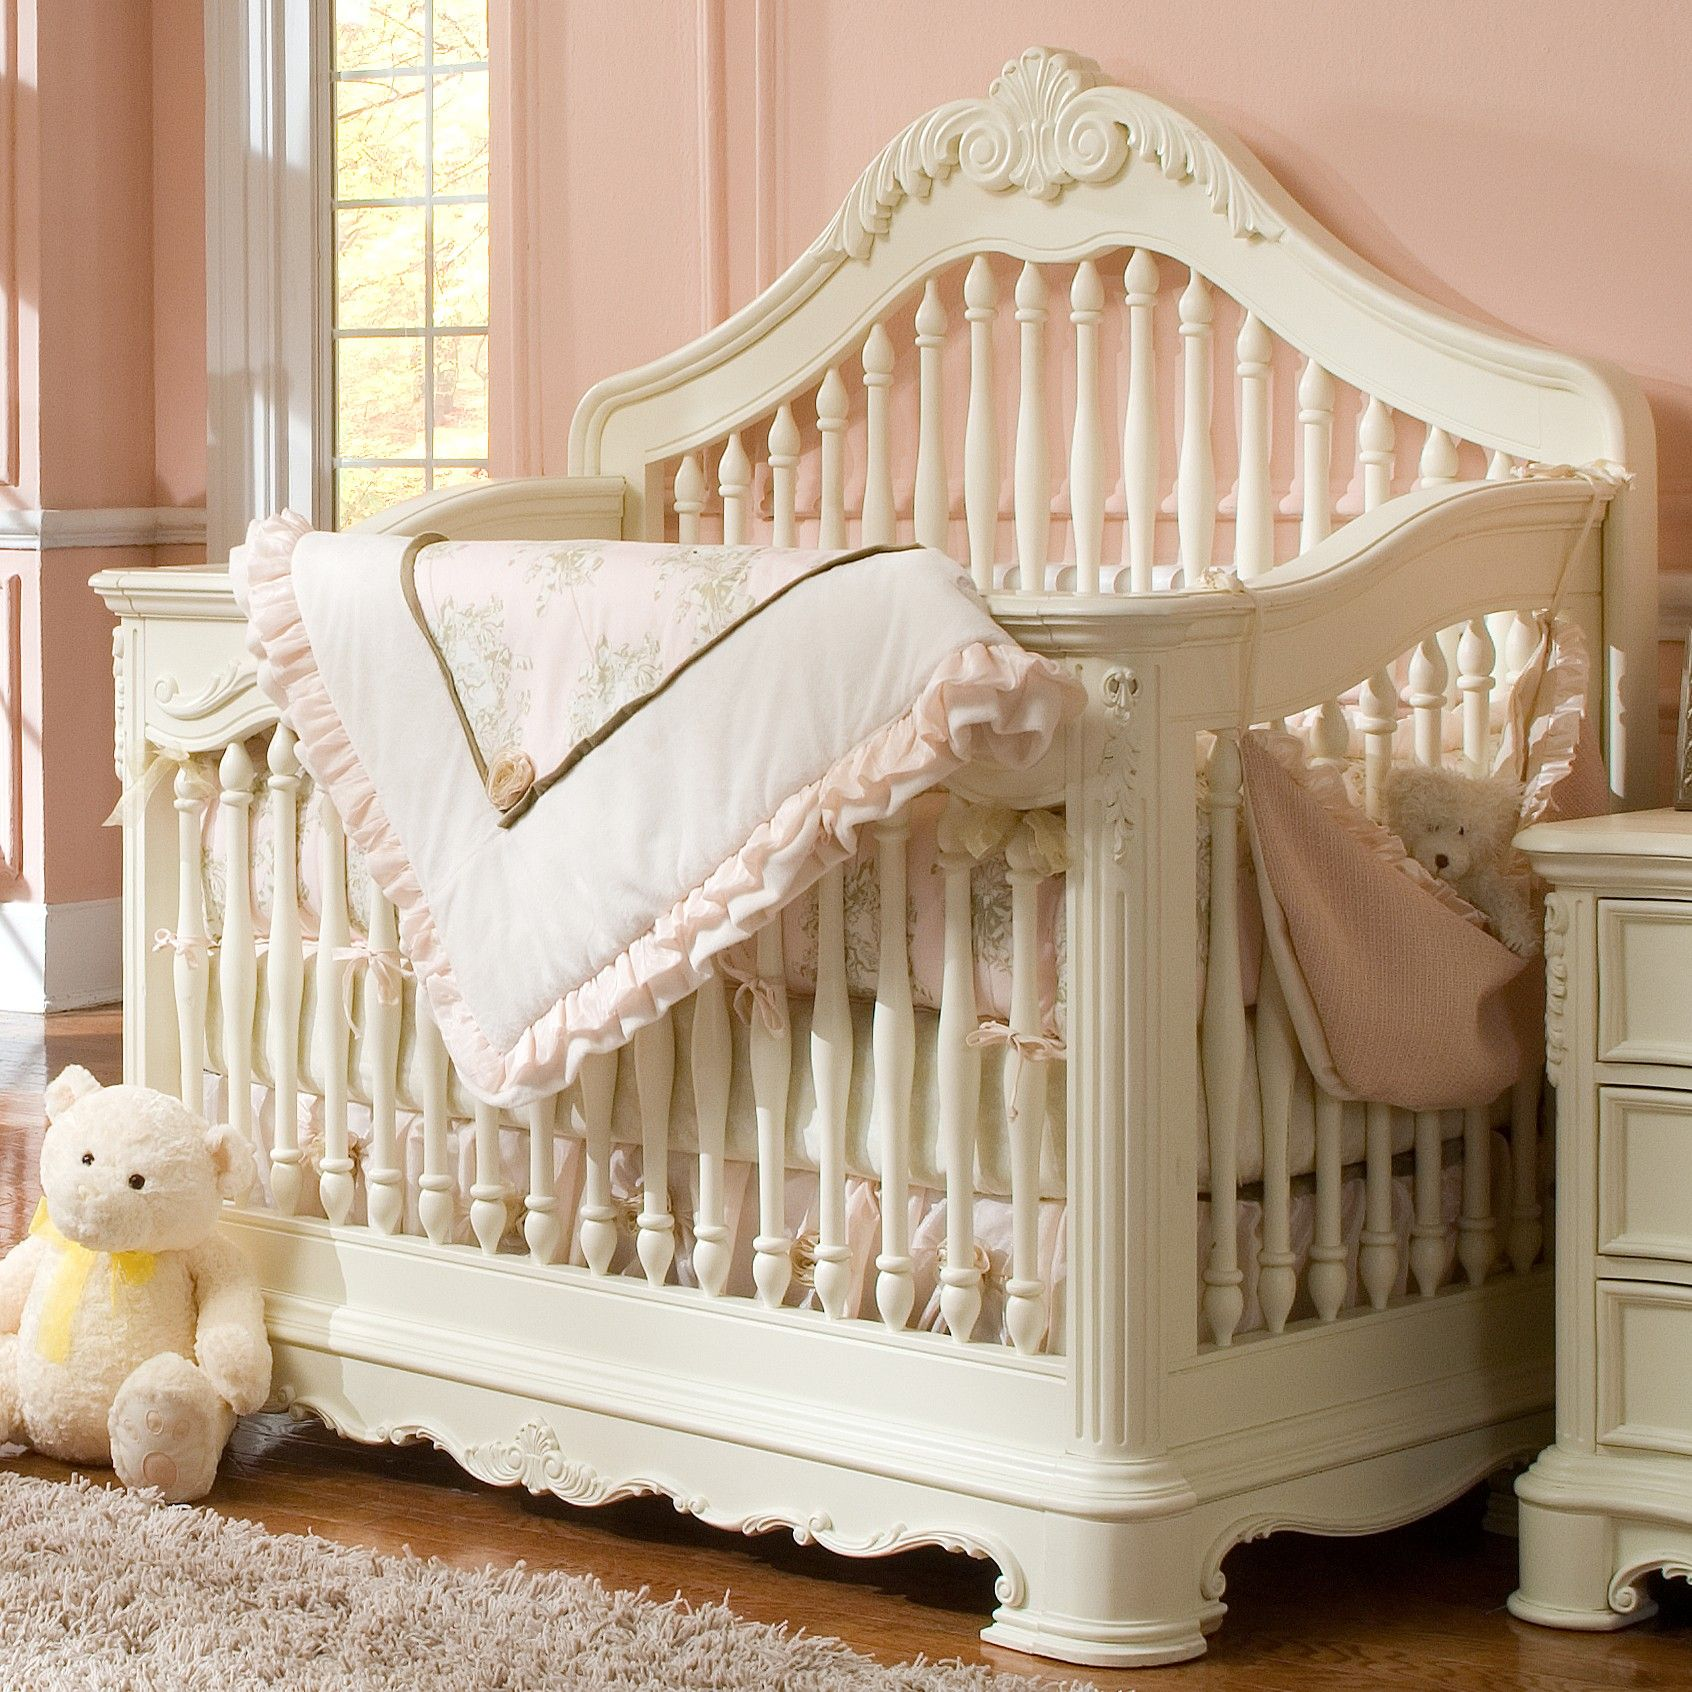 20 Beatifull Decor Ideas For Your Baby S Room: Creations Venezia Collection Convertible Crib In Vanilla